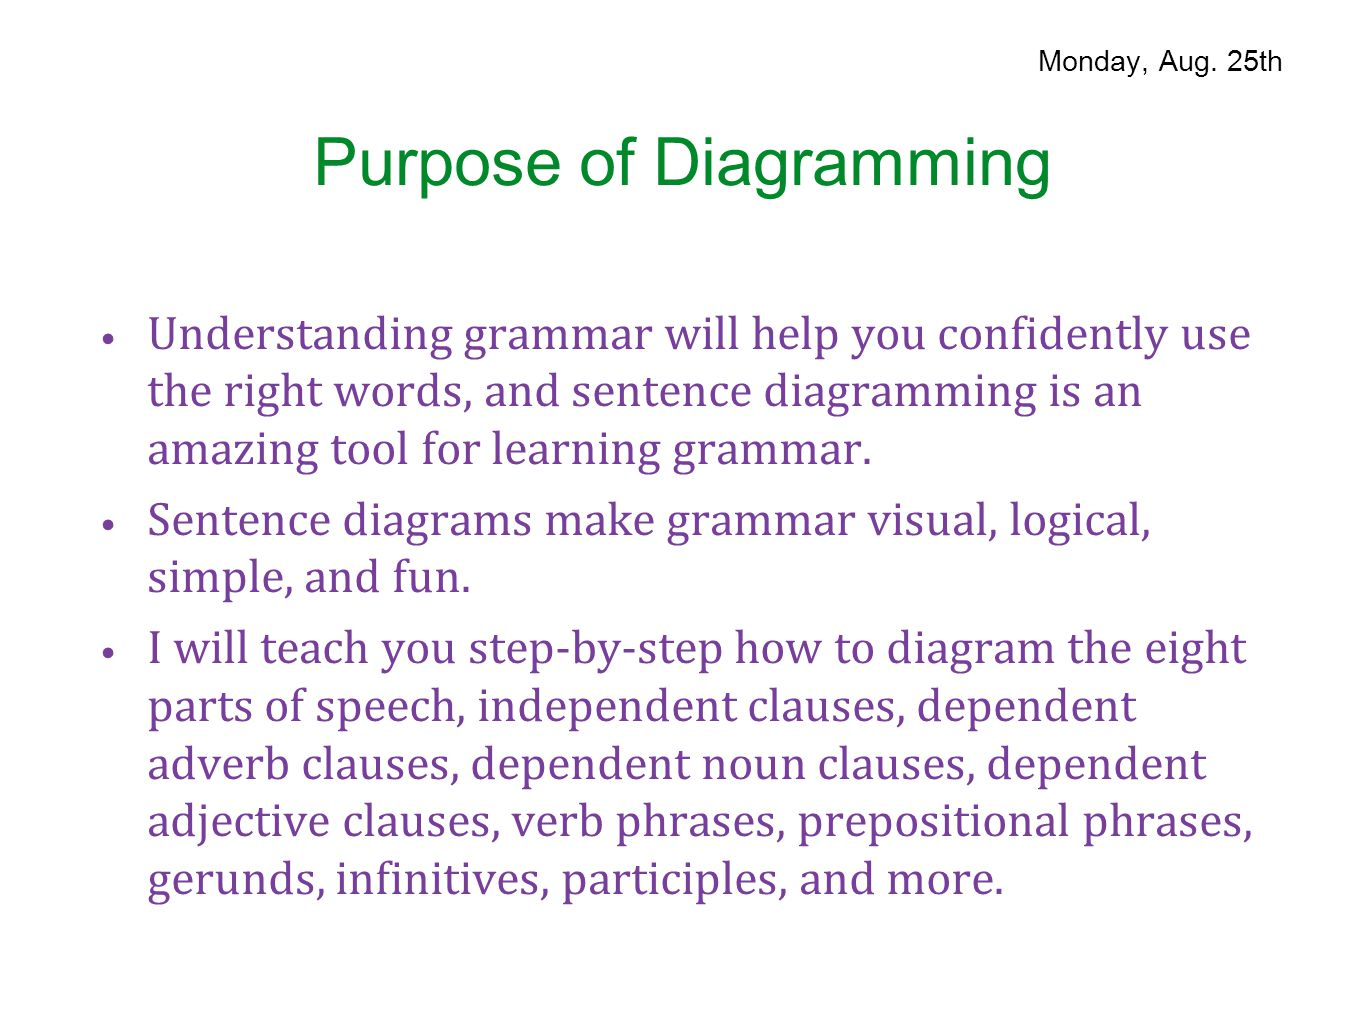 Parts of speech august 25 29 ppt download purpose of diagramming pooptronica